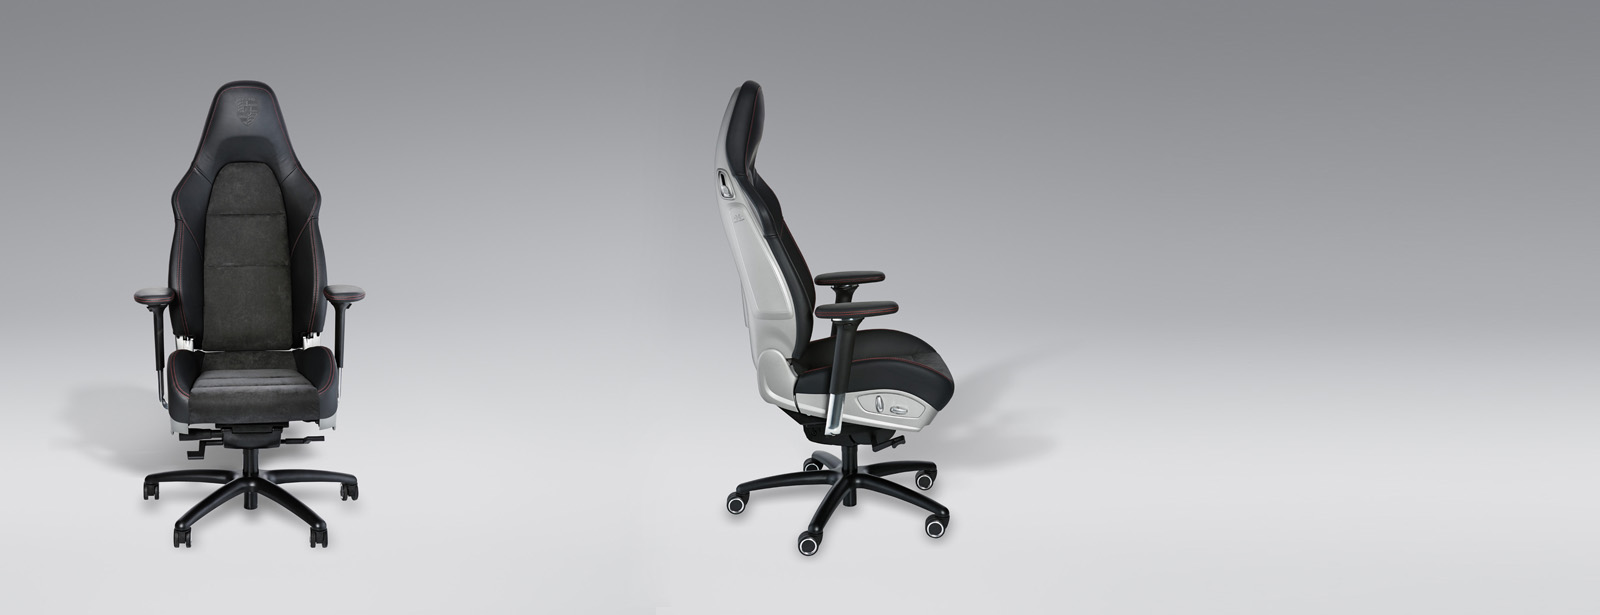 Porsche Office Chair RS & Porsche Masterpieces